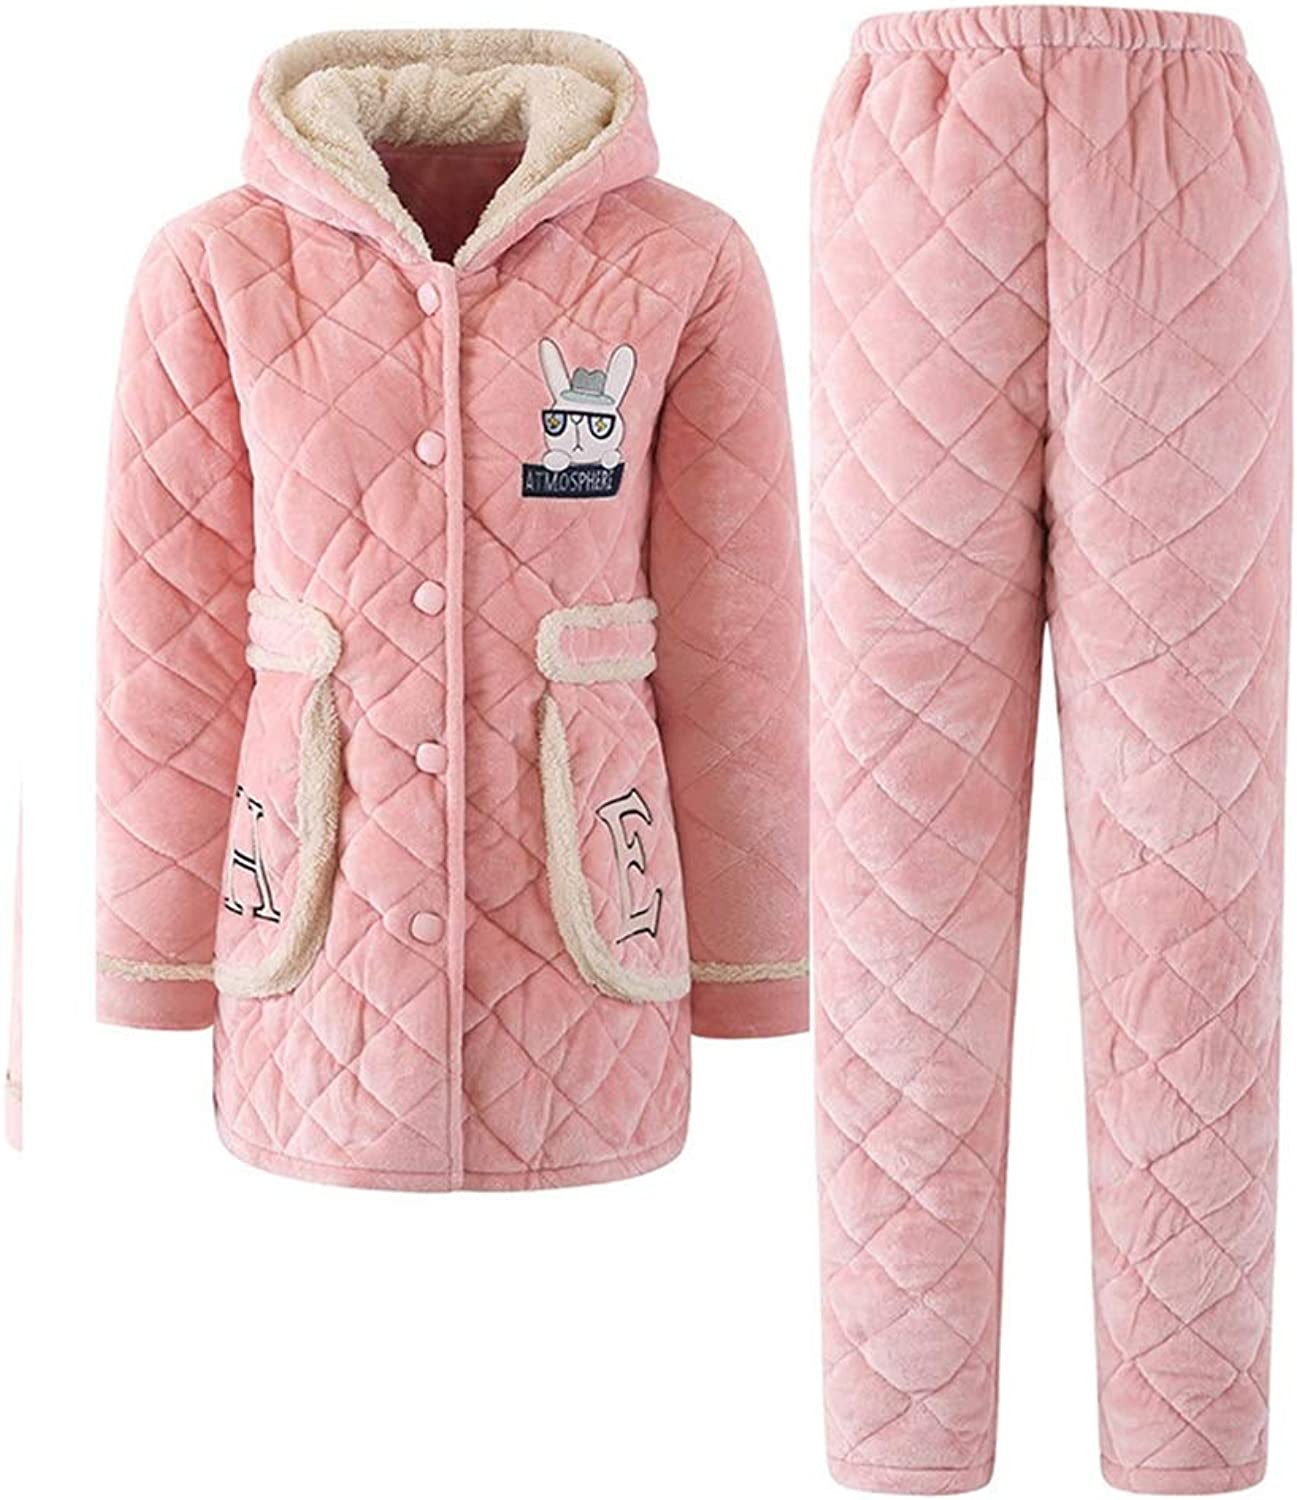 LeeQn Winter Ladies Flannel Padded Quilted Pajamas Hooded Warm Suit Nightclothes